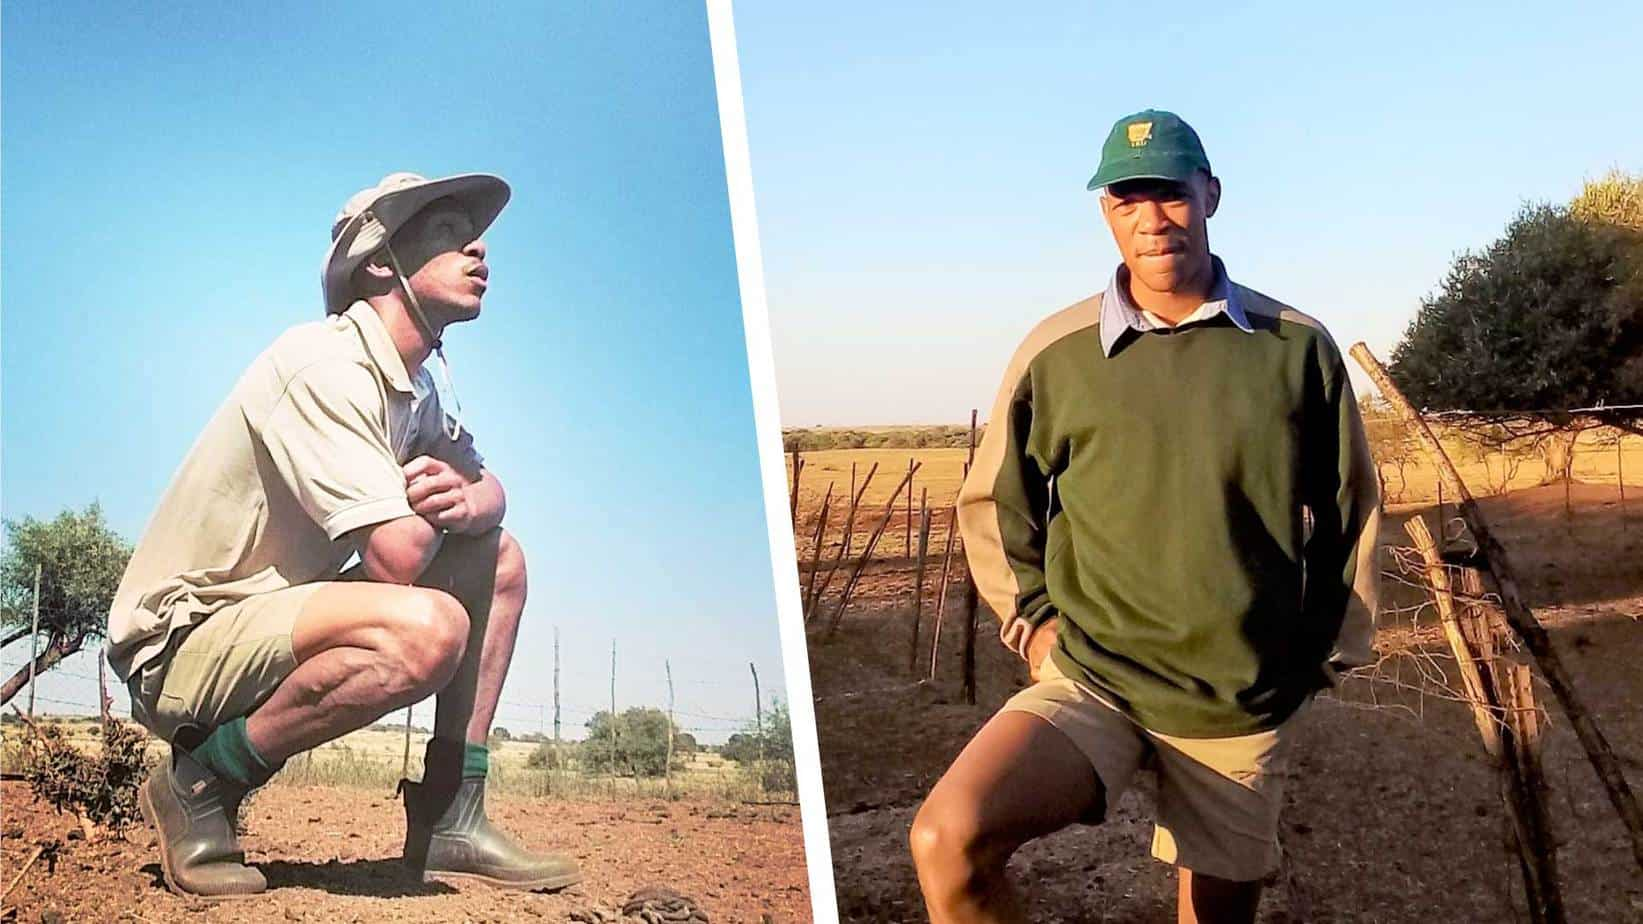 Gustav Thekiso took the plunge and grew his father's farming enterprise from subsistence to a larger scale. They now operate three farms in different parts of the North West province. Photo: Supplied/Food For Mzansi